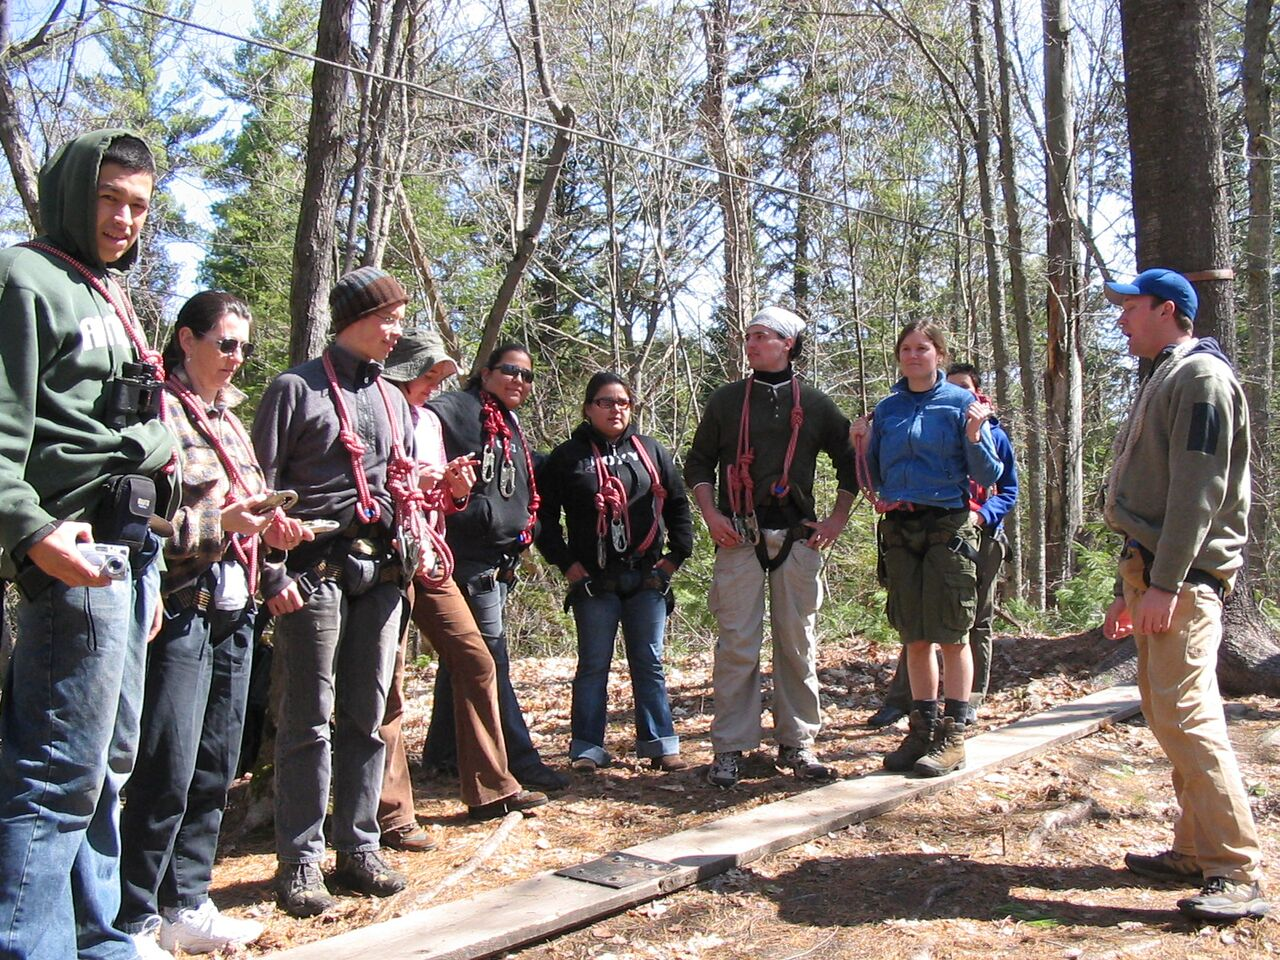 Picture of a group of people wearing harnesses while participating in an activity